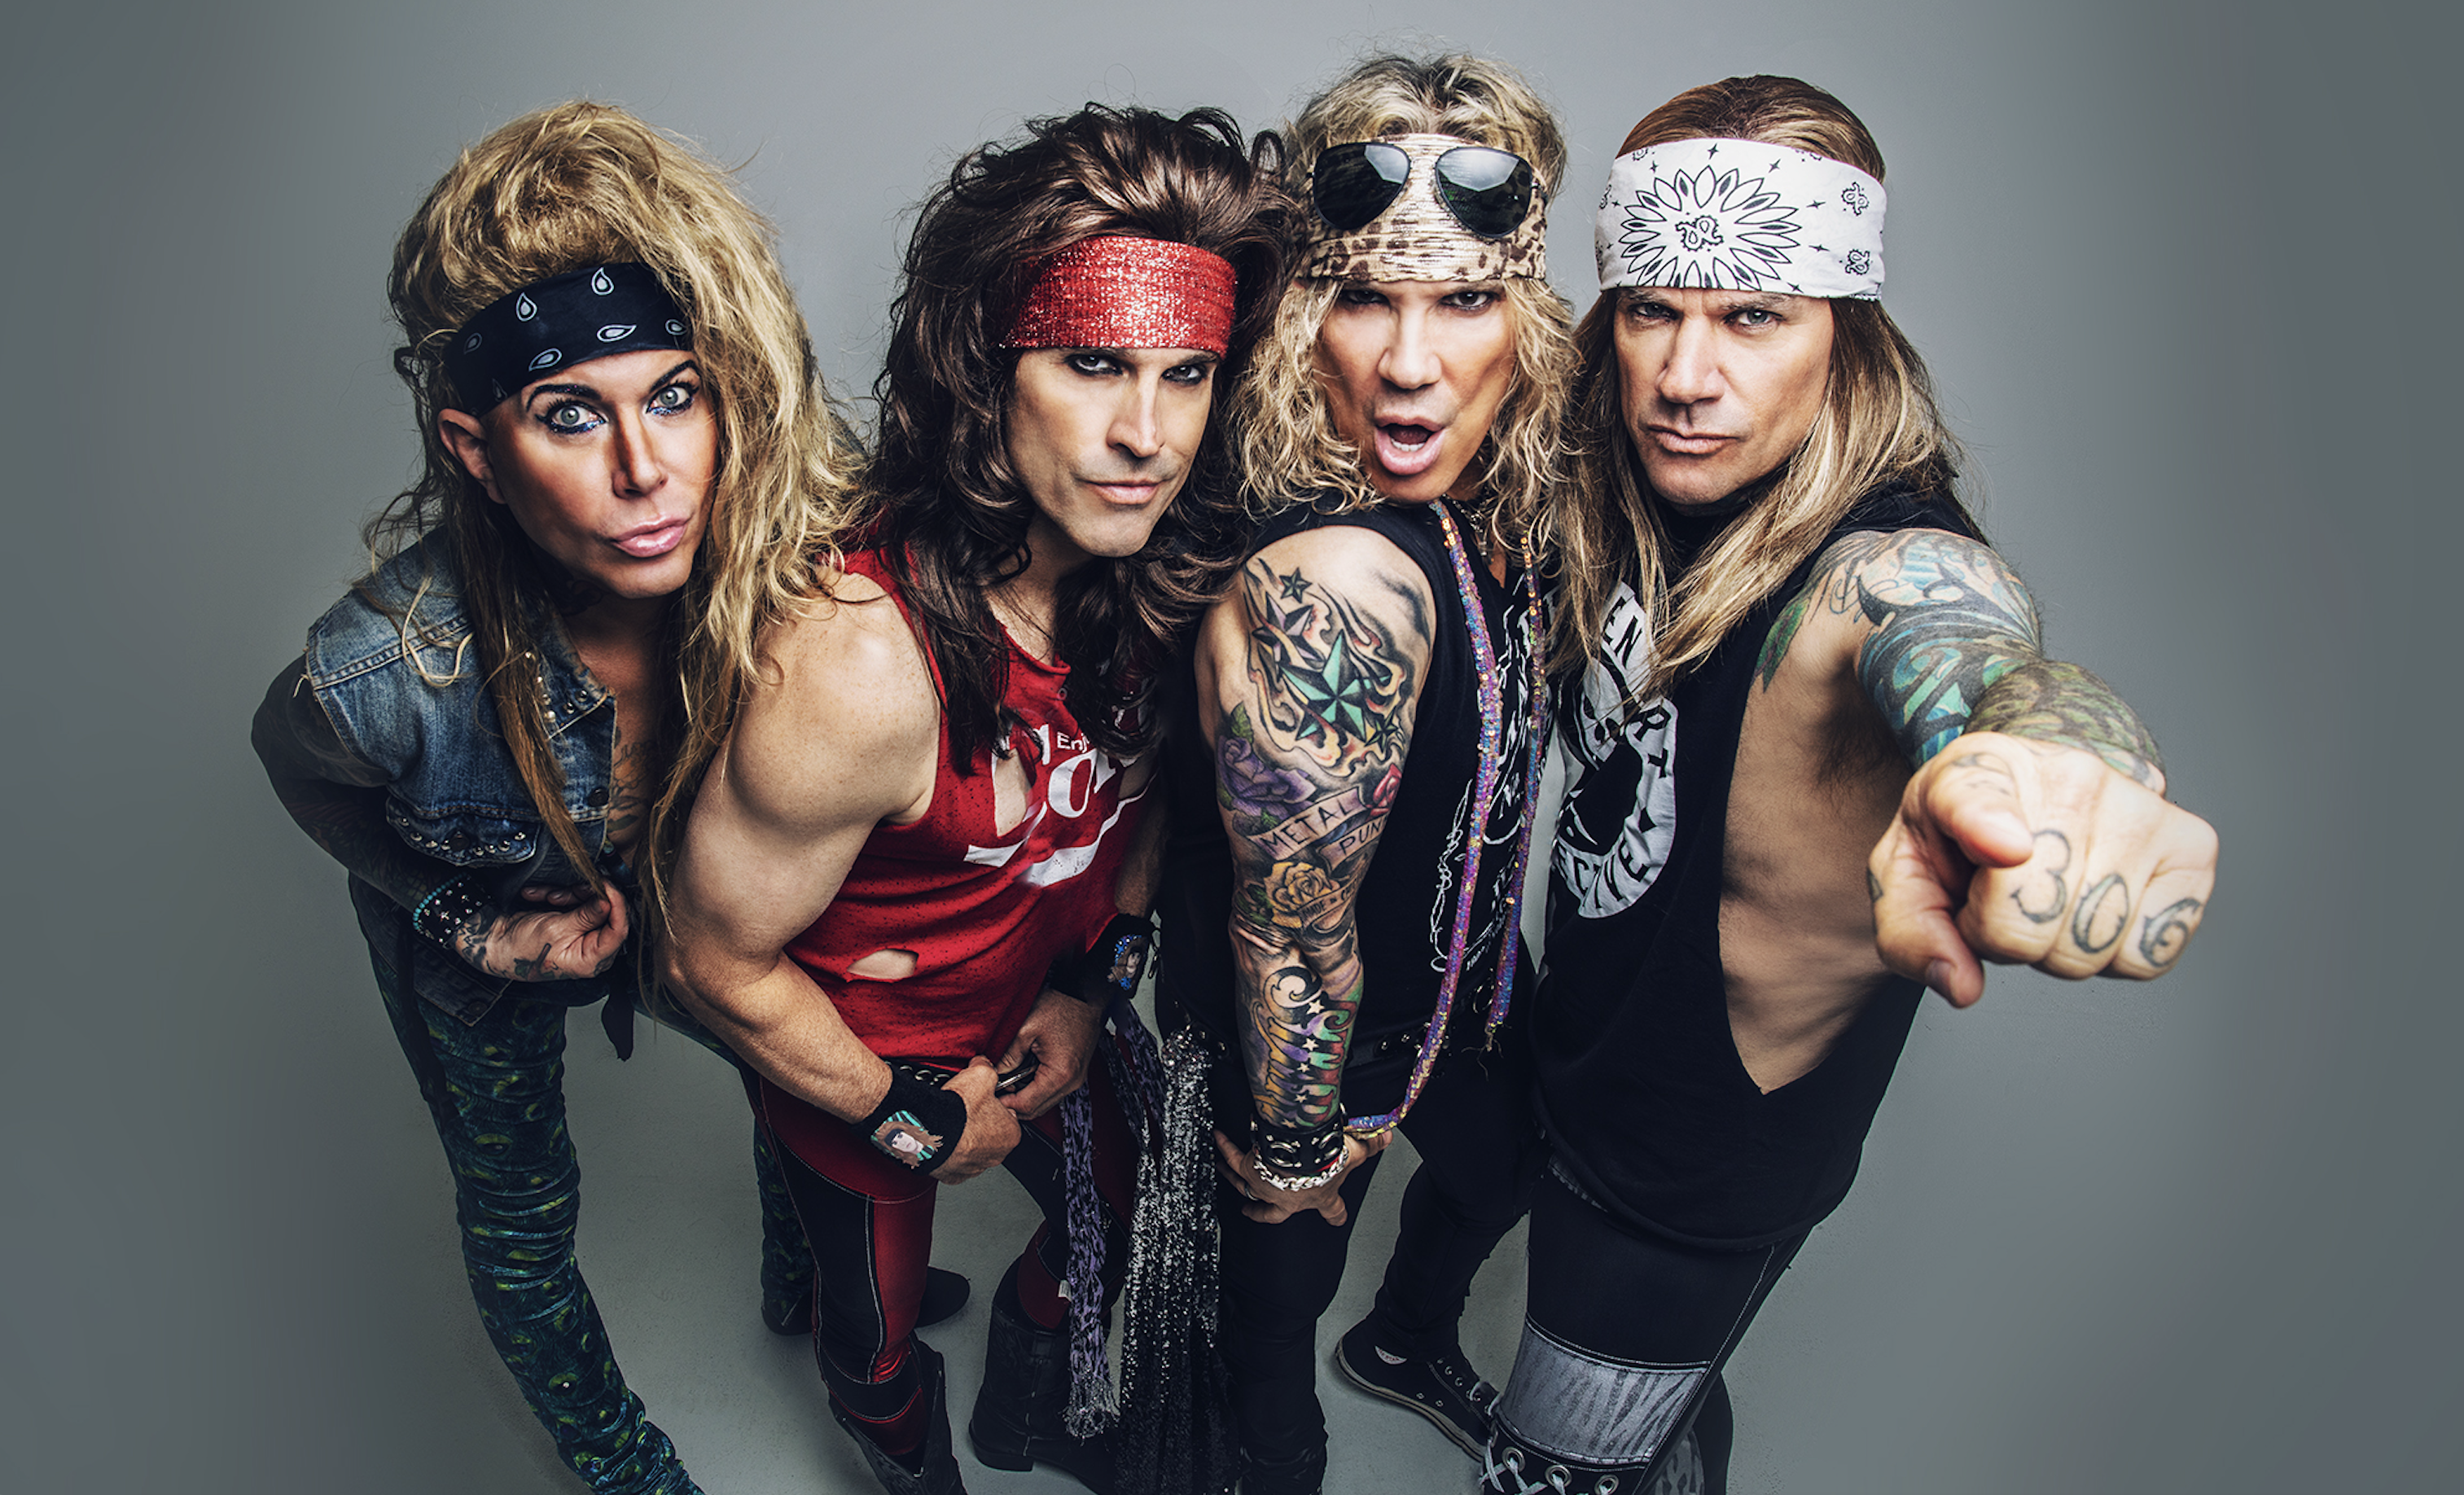 Steel Panther Release Tribute To Van Halen With Cover Of 'Beautiful Girls'